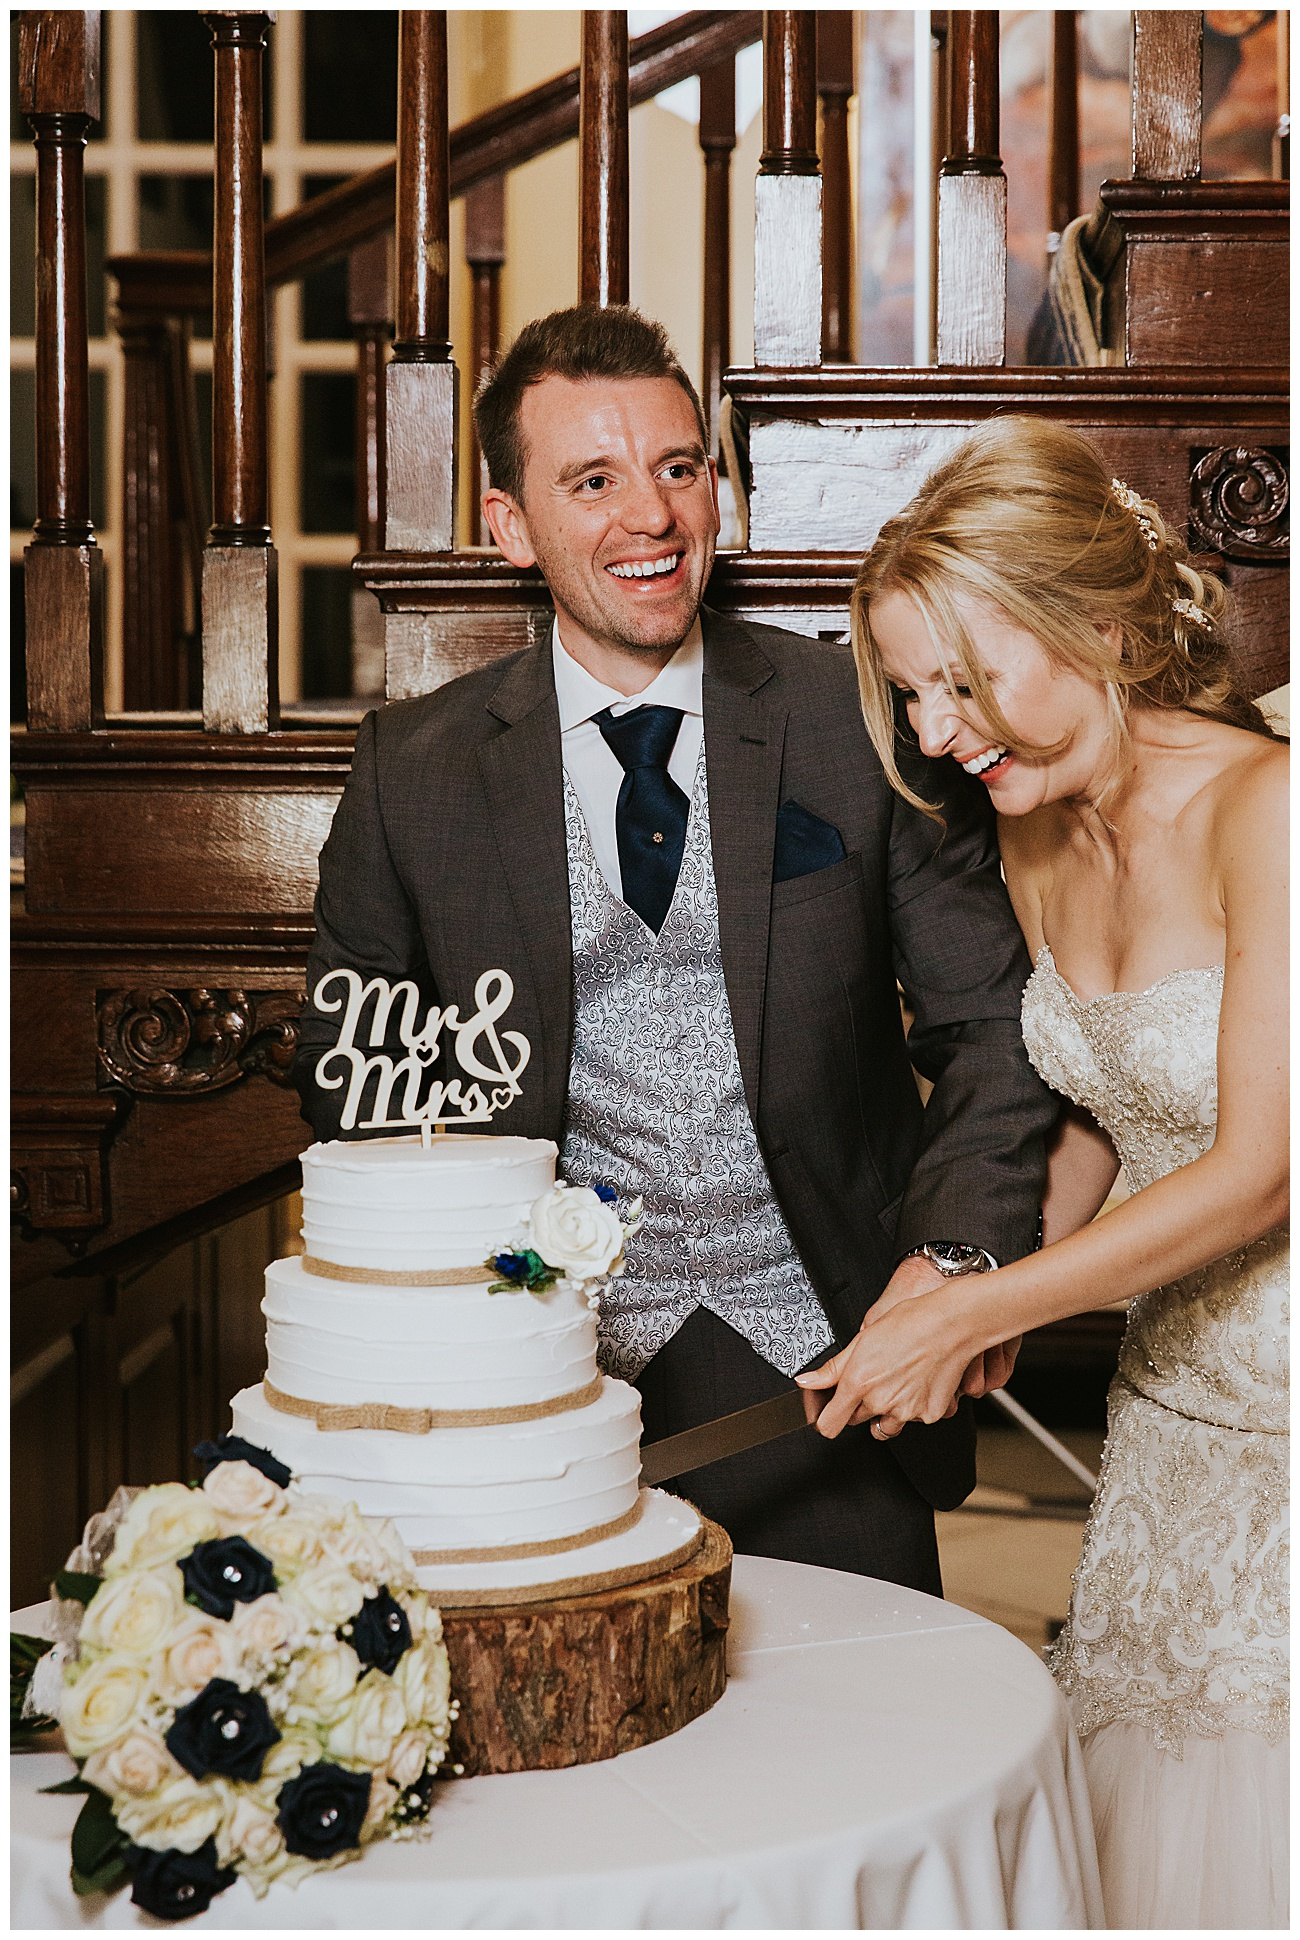 The bride and groom laugh while cutting the cake